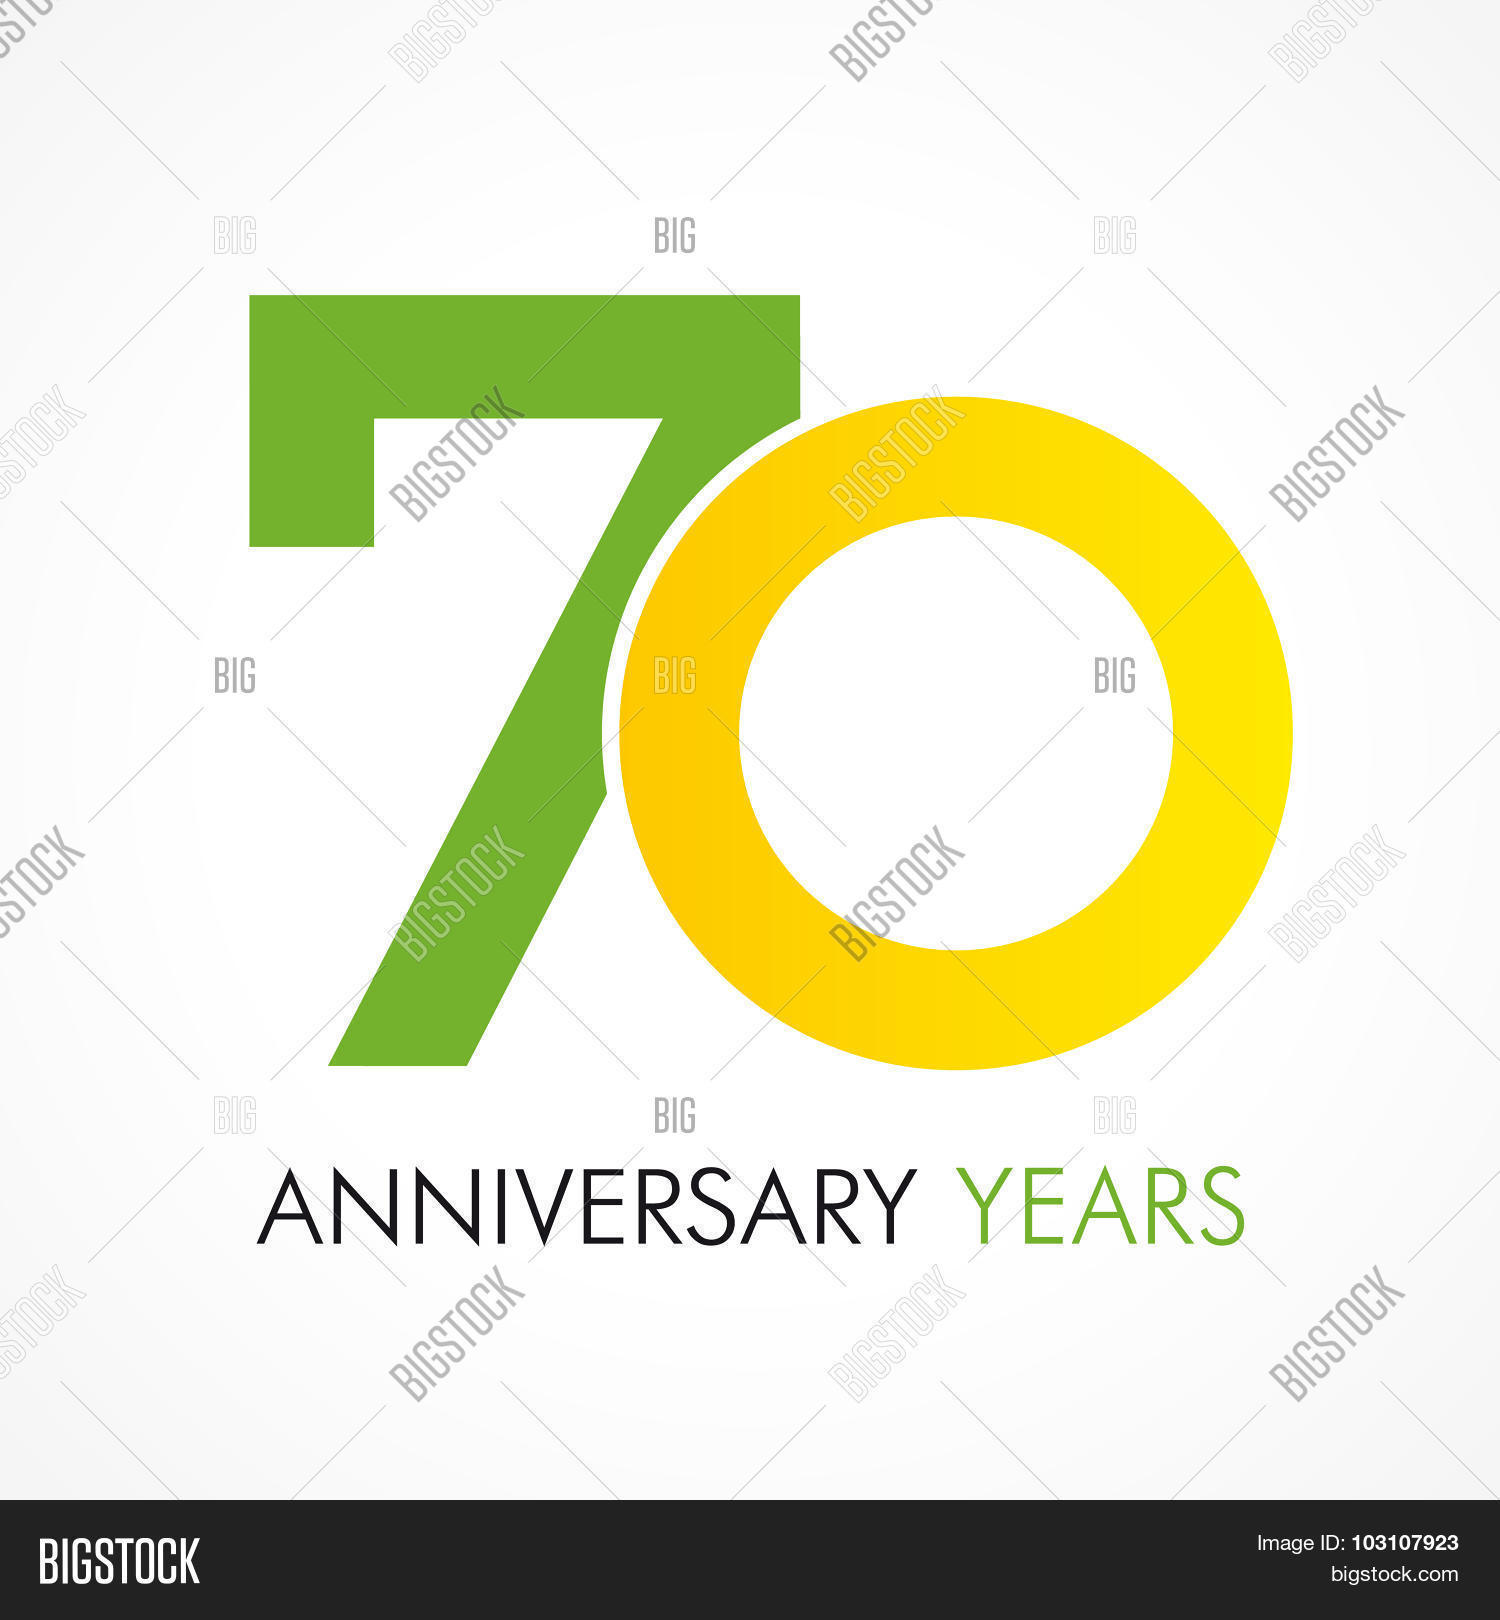 70 Years Old Vector Photo Free Trial Bigstock